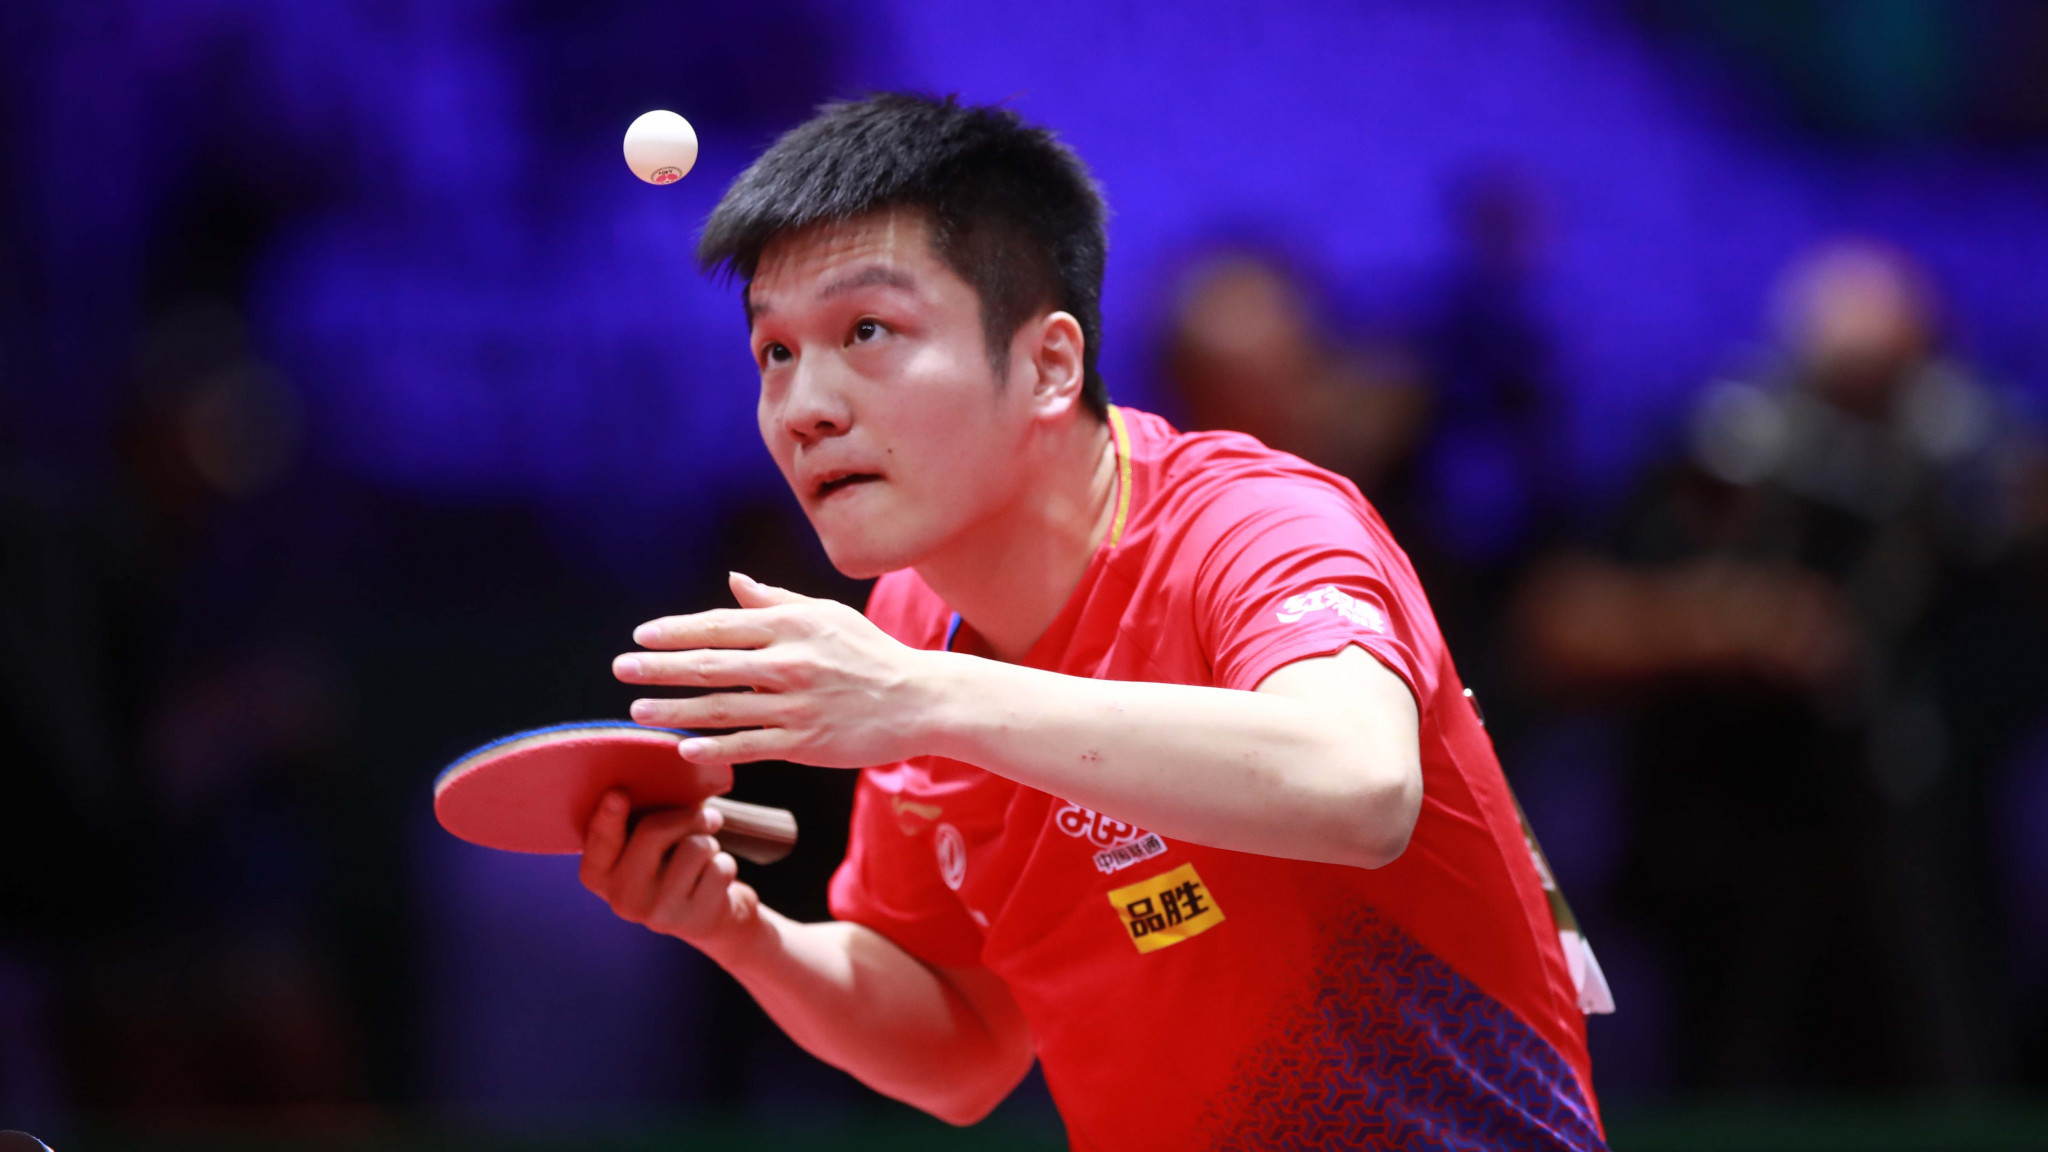 Fan and Chen retain top spots as new table tennis world rankings come into force